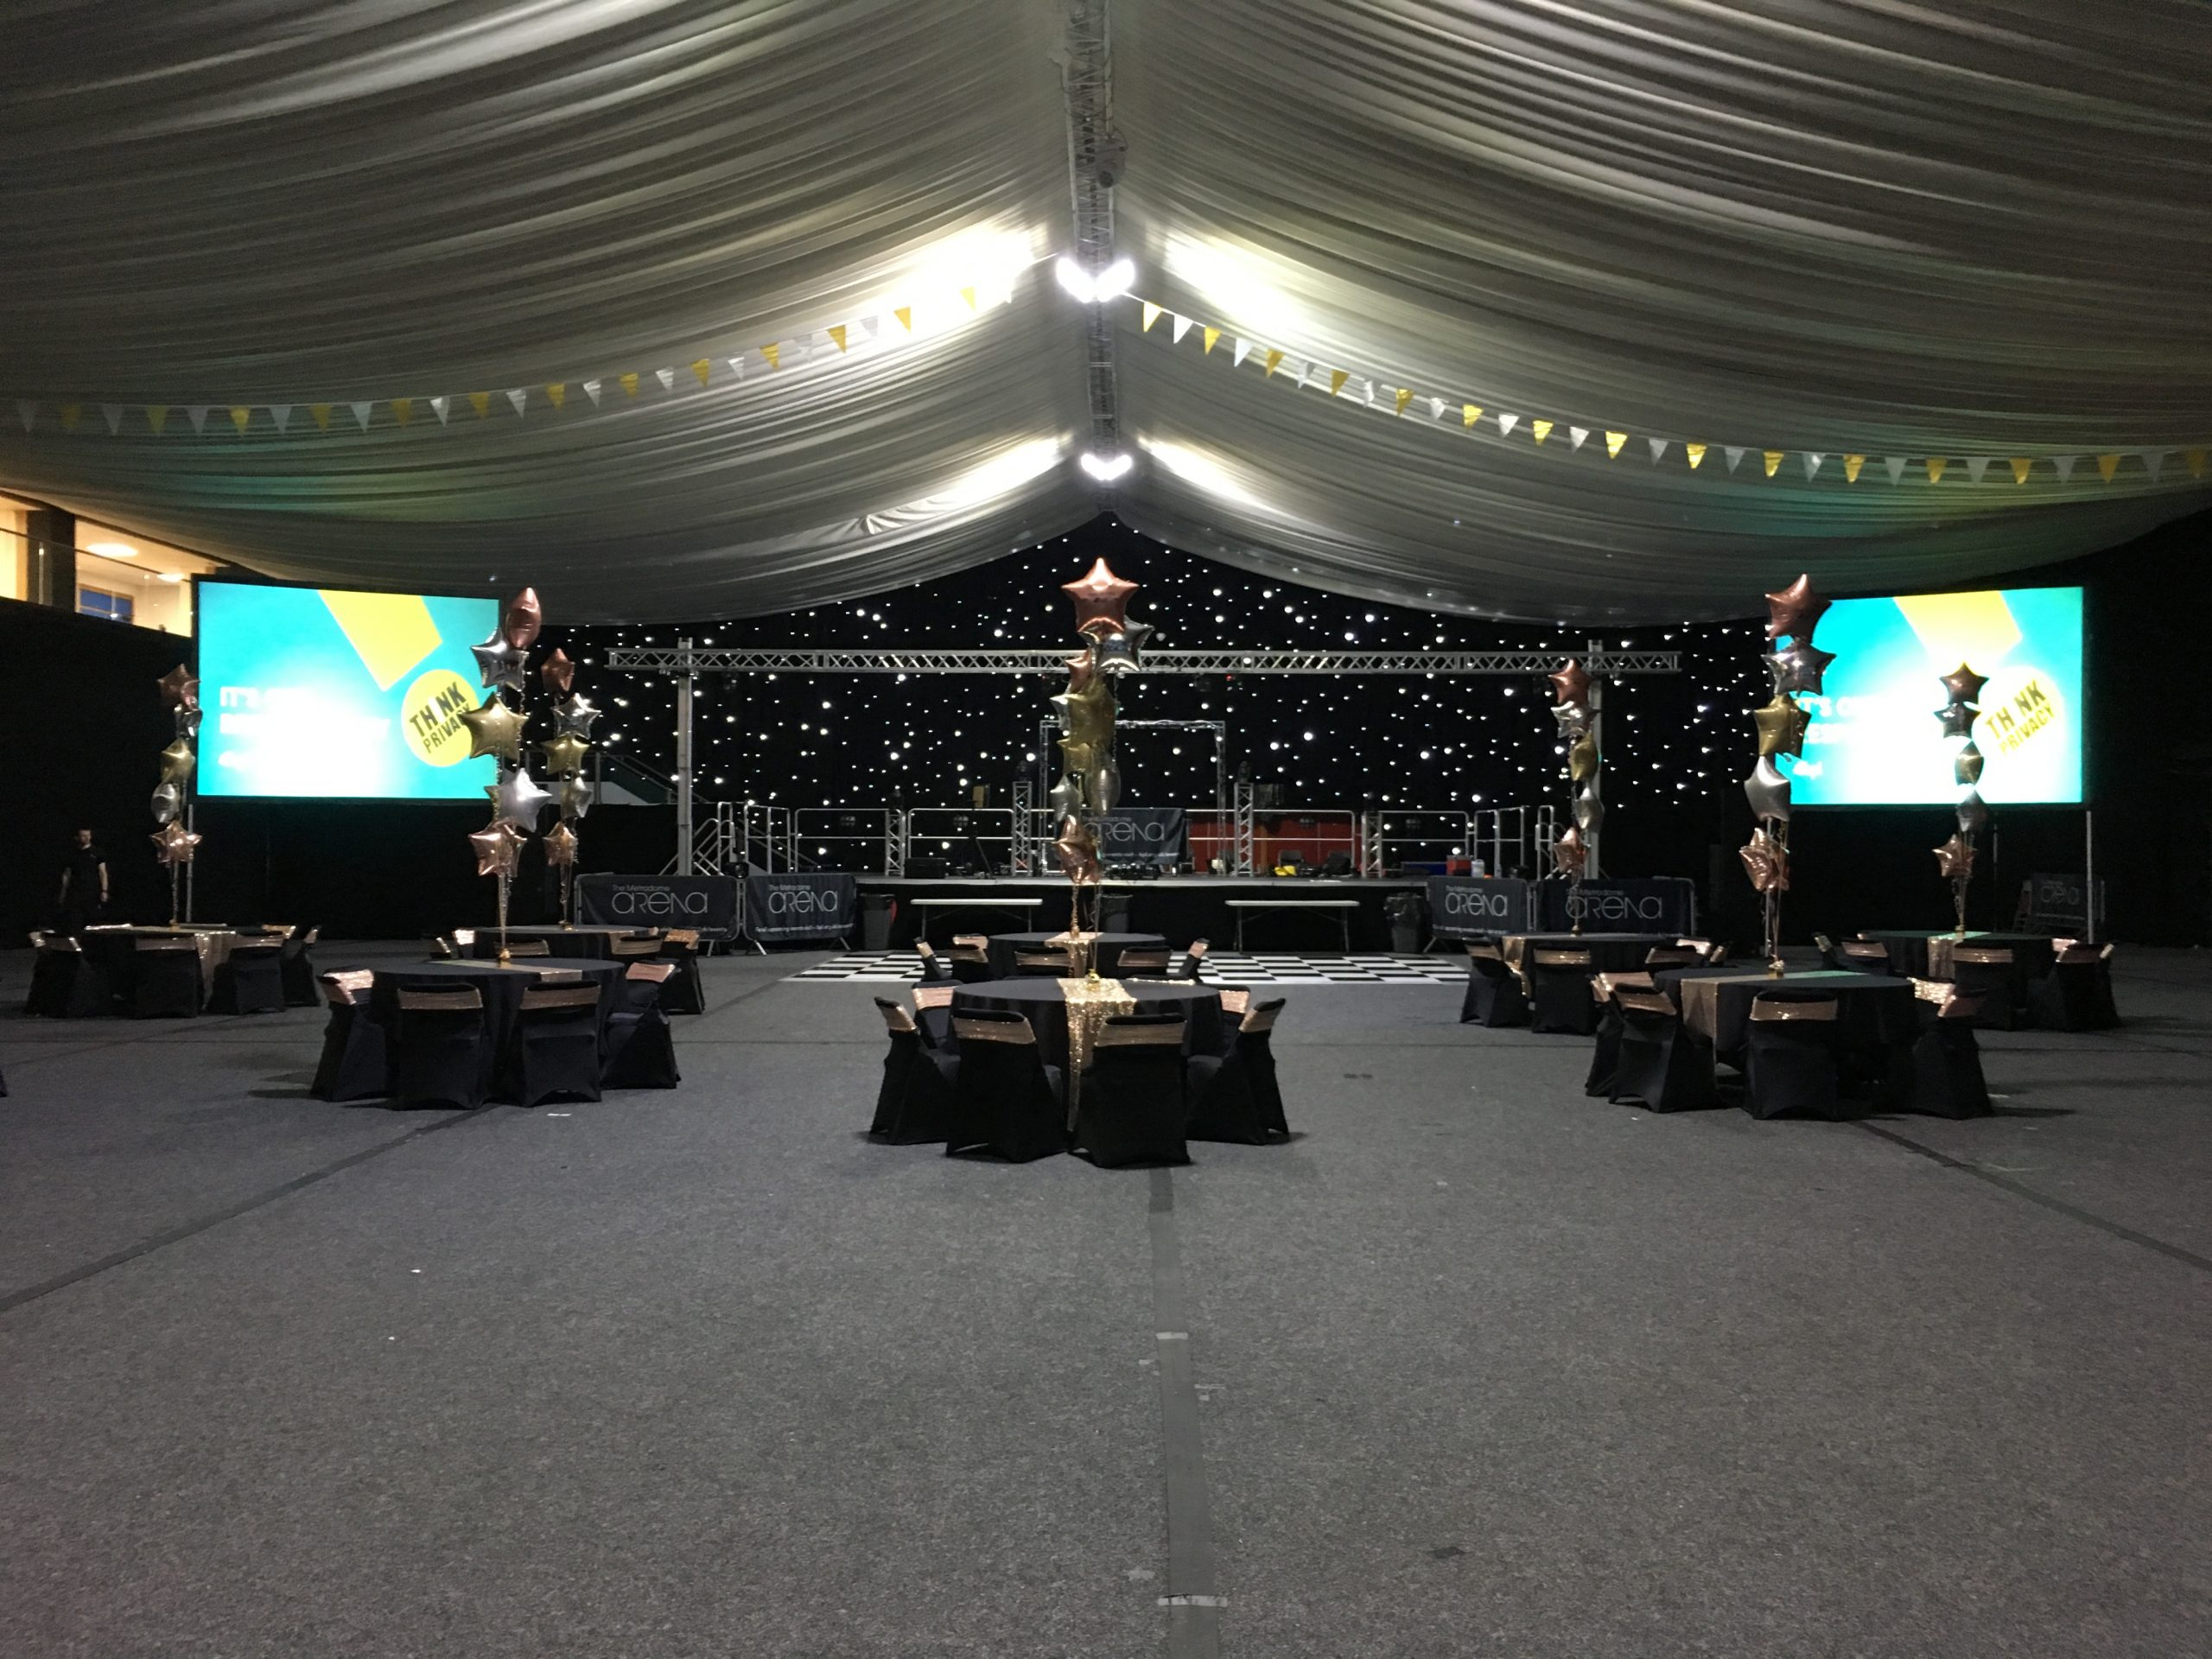 Celebration event with lighting and projectors